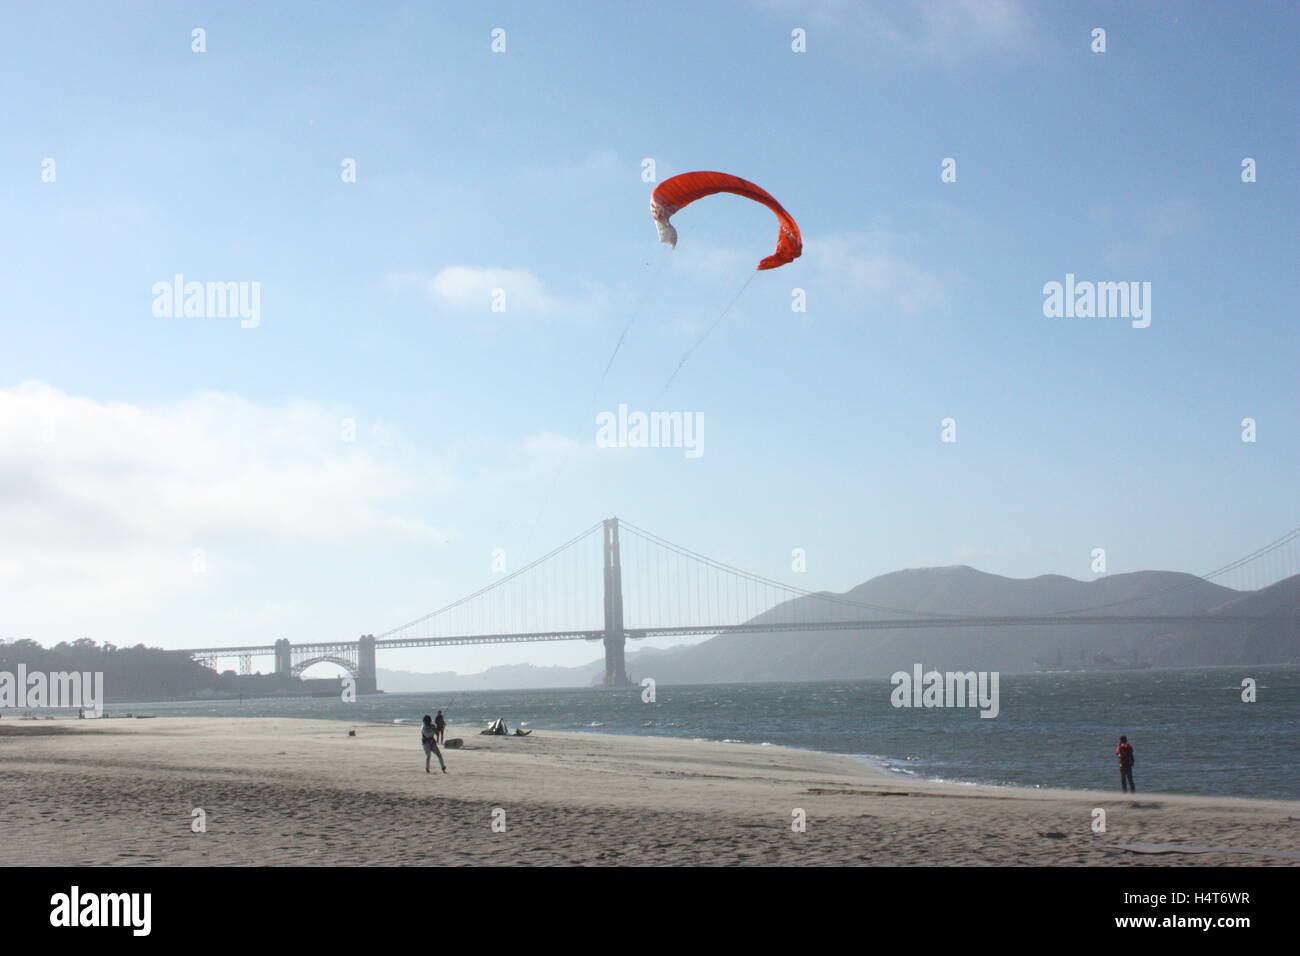 The Golden Gate Bridge with someone flying a kite on the beach next to the sea - Stock Image